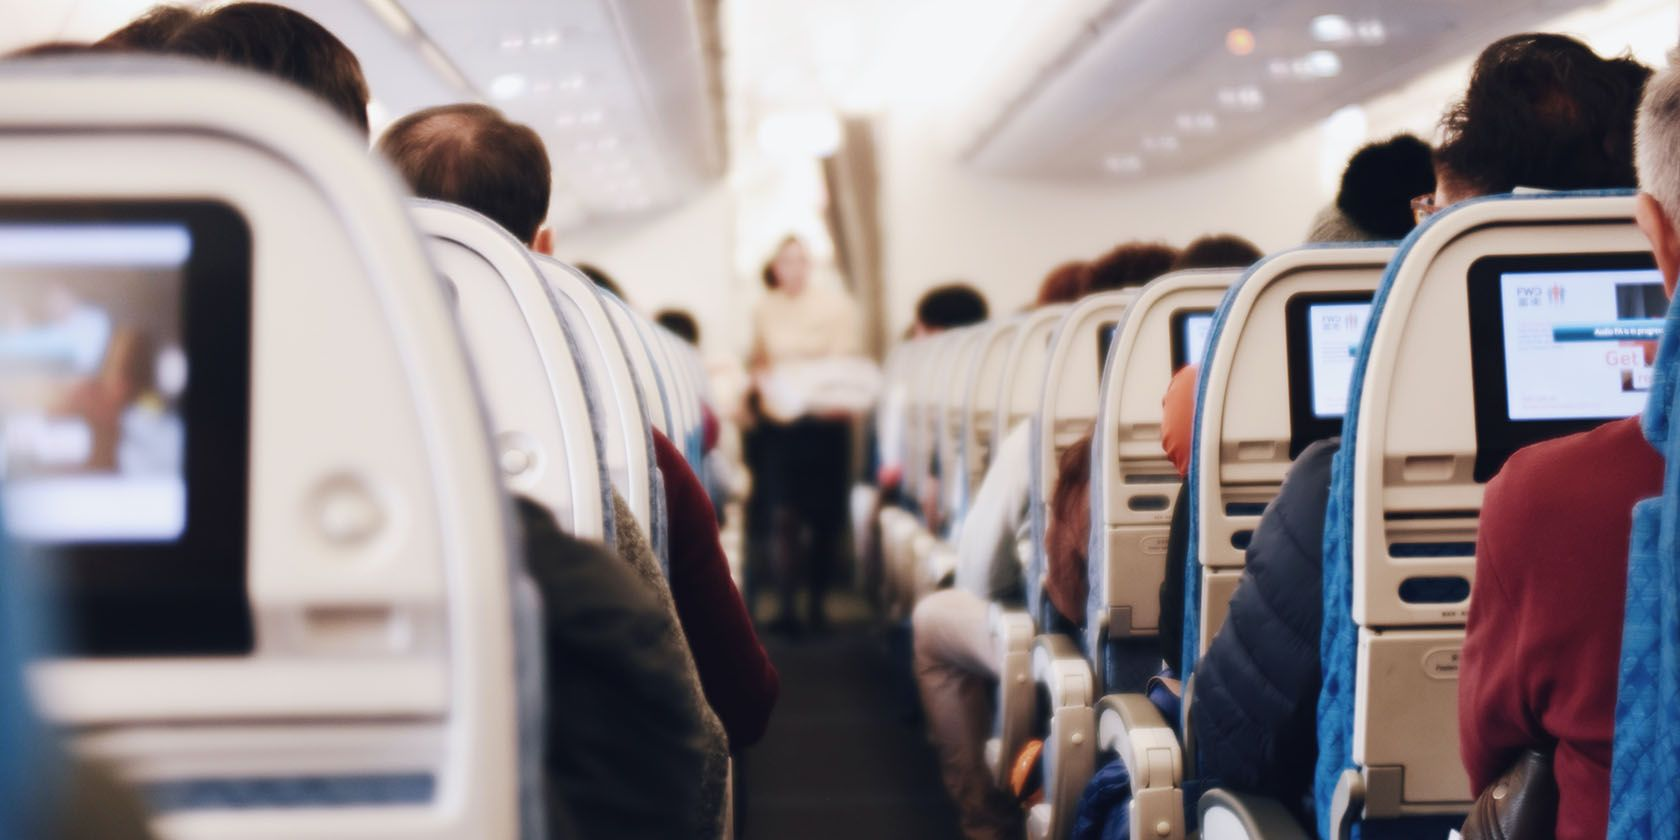 11 Things You Can Do While on Airplane Mode